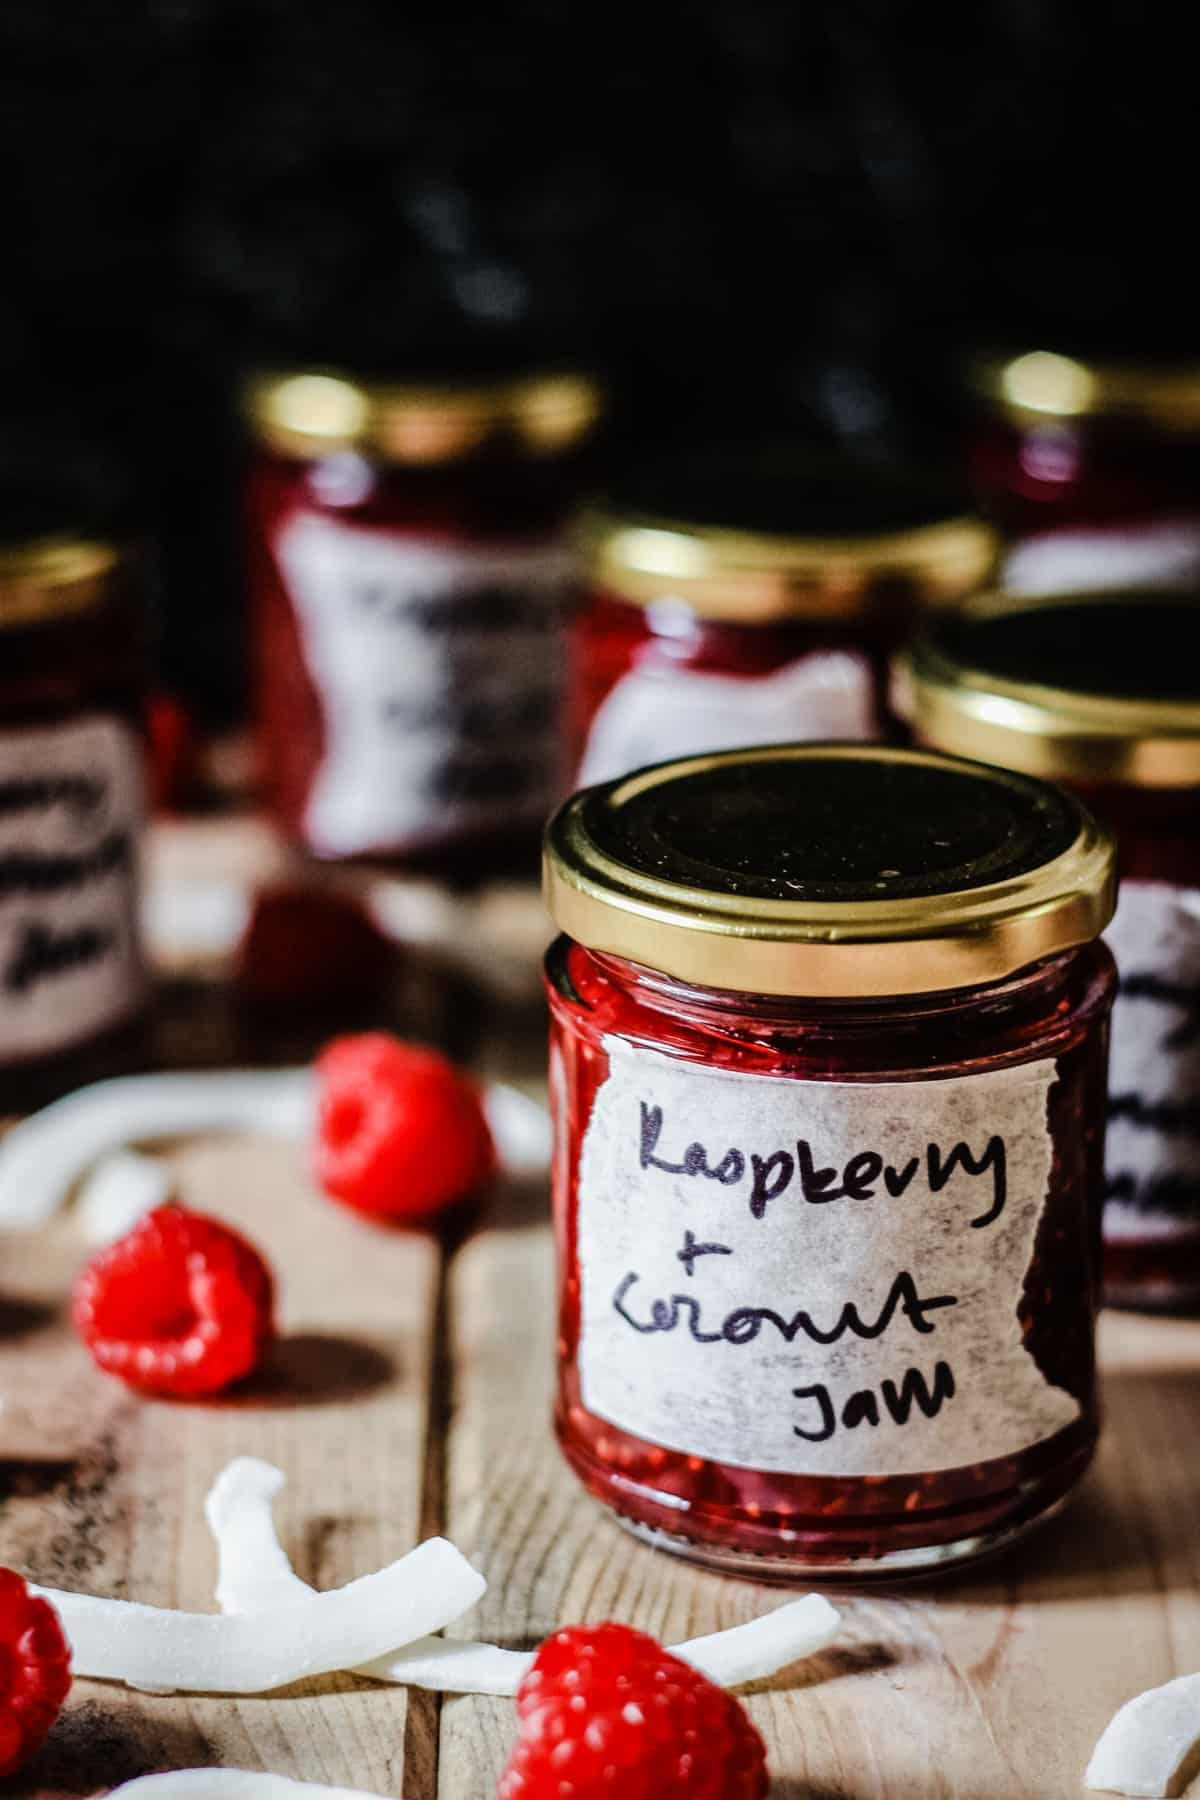 A labelled jar of raspberry coconut jam